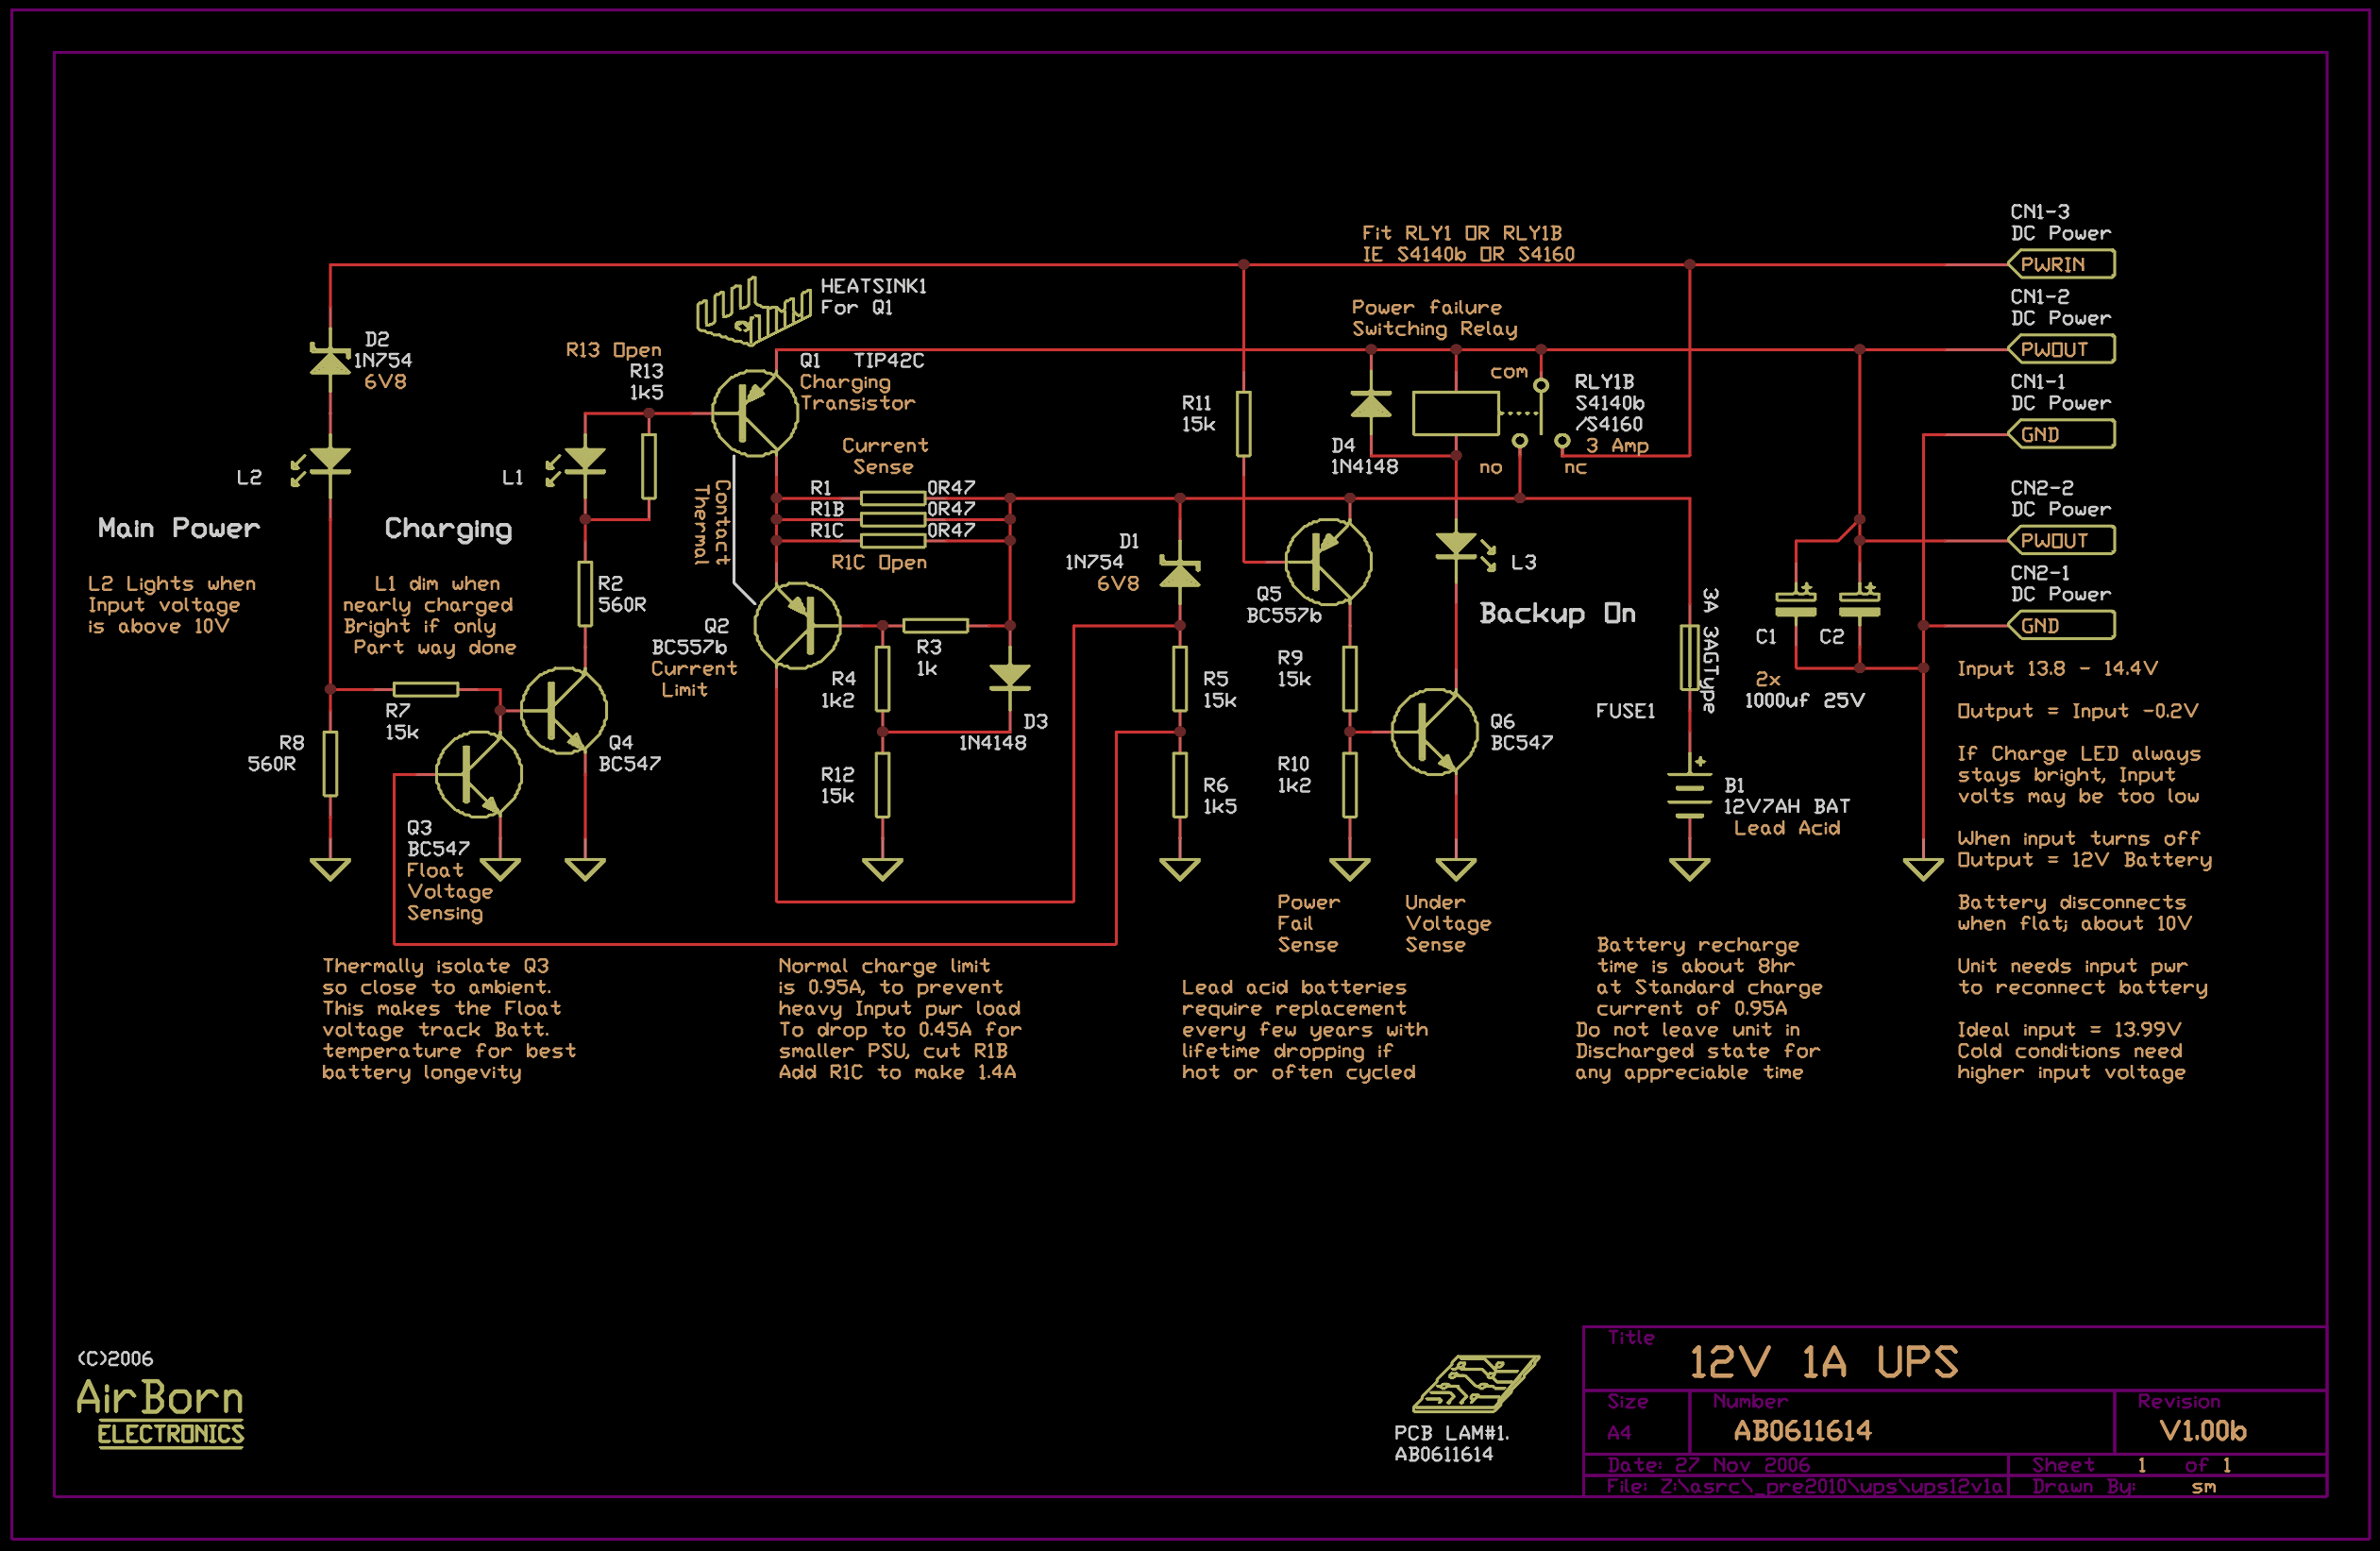 Pleasing Ups Circuit Diagram 500Va Basic Electronics Wiring Diagram Wiring Digital Resources Timewpwclawcorpcom